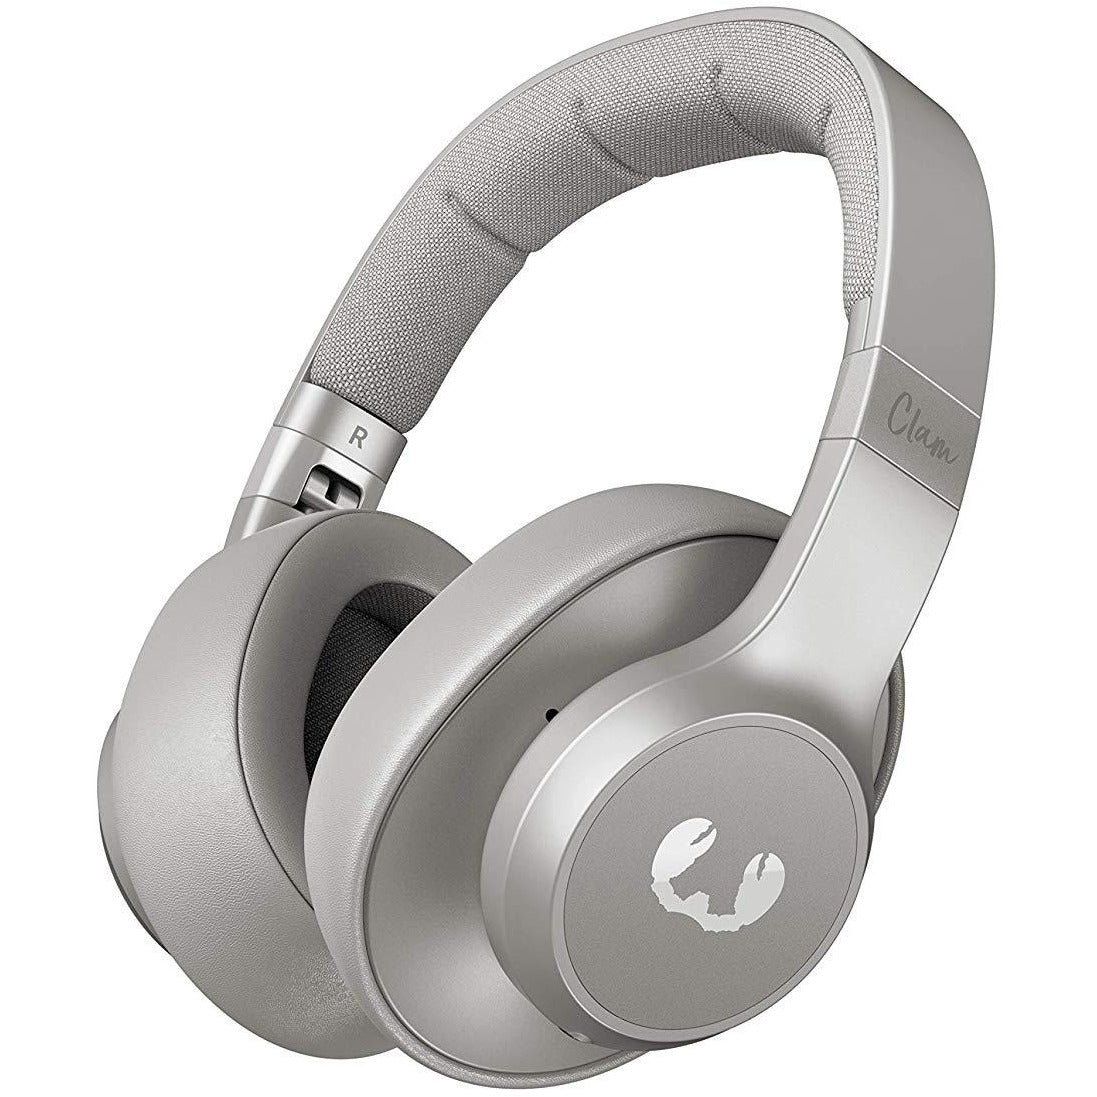 Fresh 'n' Rebel Headphones CLAM ANC Ice Grey [Accessories]